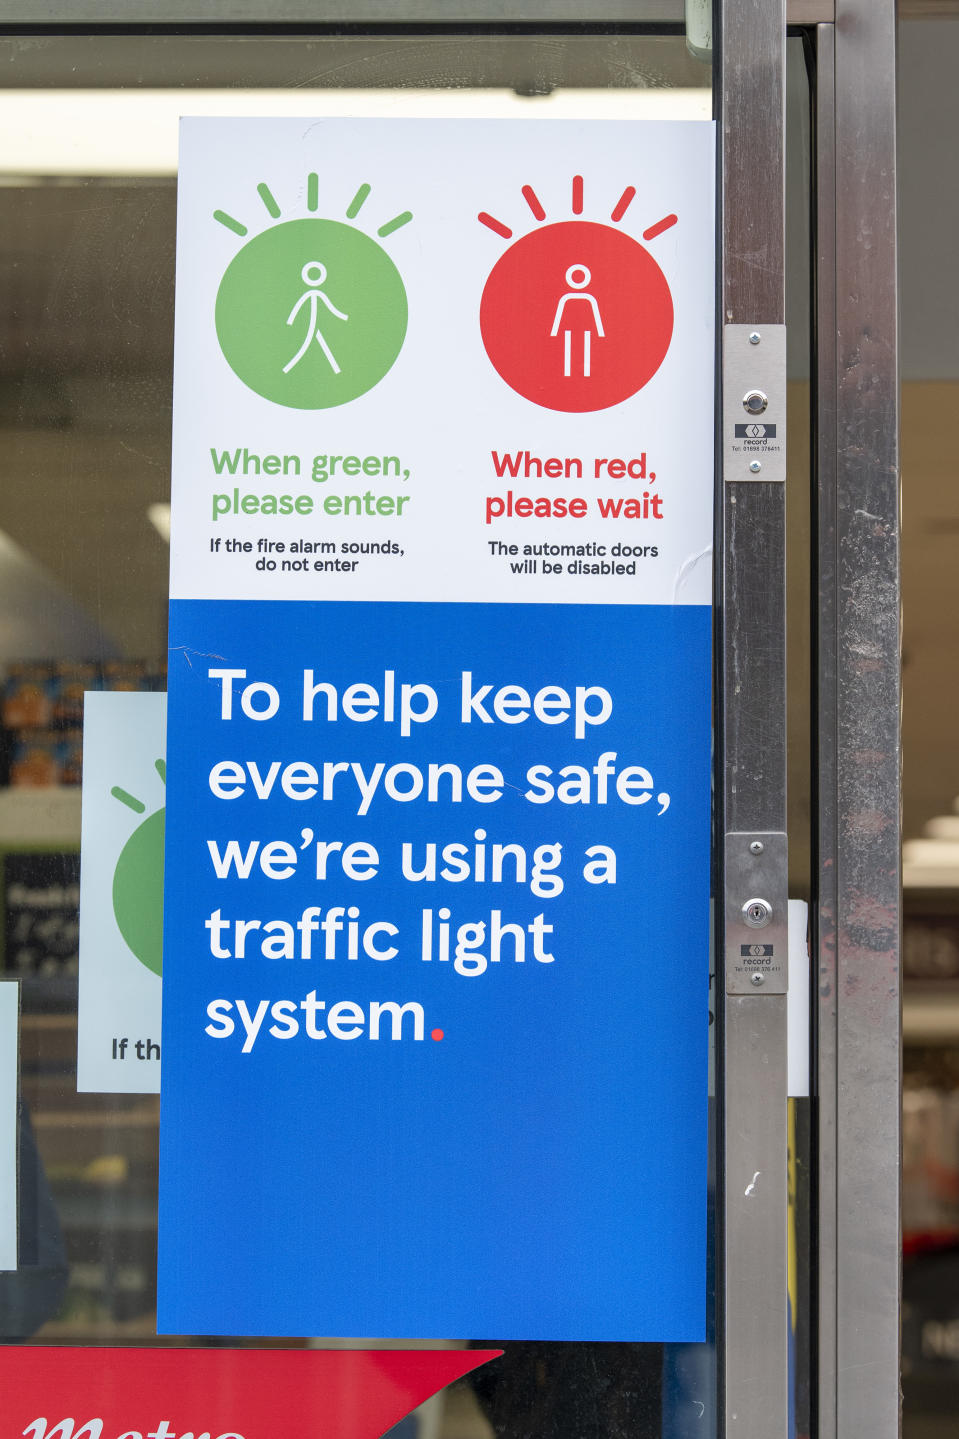 LONDON, UNITED KINGDOM - 2020/10/12: Signage seen at the Tesco metro supermarket in Dean Street, which has a traffic light system to let shoppers know when it is safe to enter the store so it can adhere to social distancing restrictions. (Photo by Dave Rushen/SOPA Images/LightRocket via Getty Images)